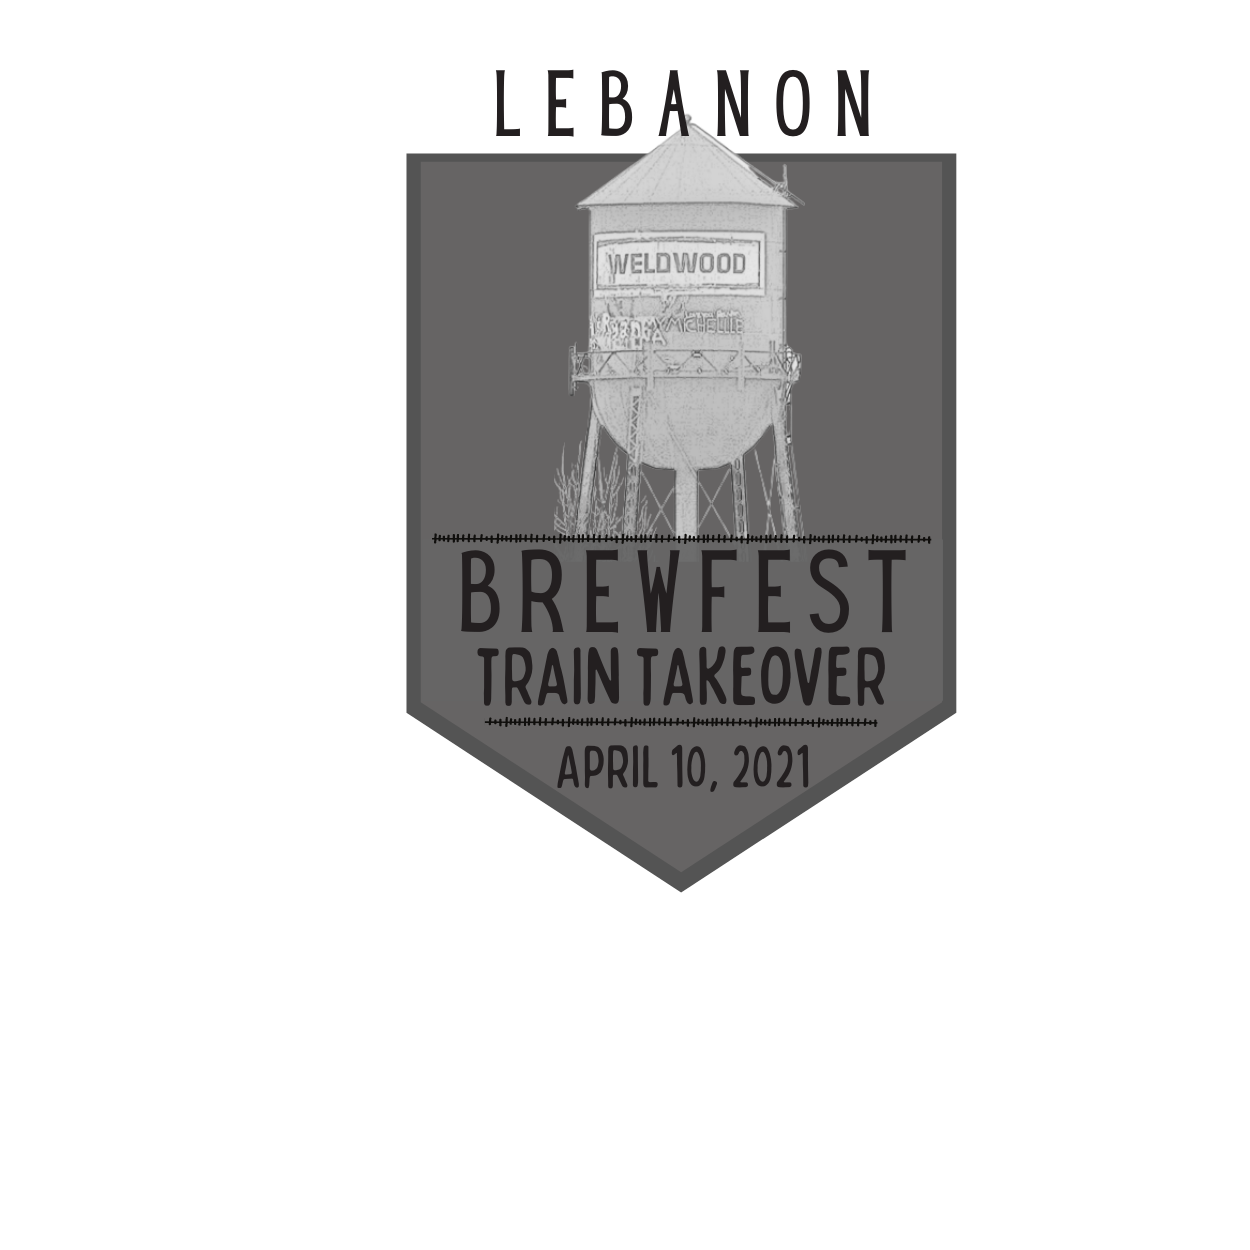 Lebanon Brewfest Train Takeover